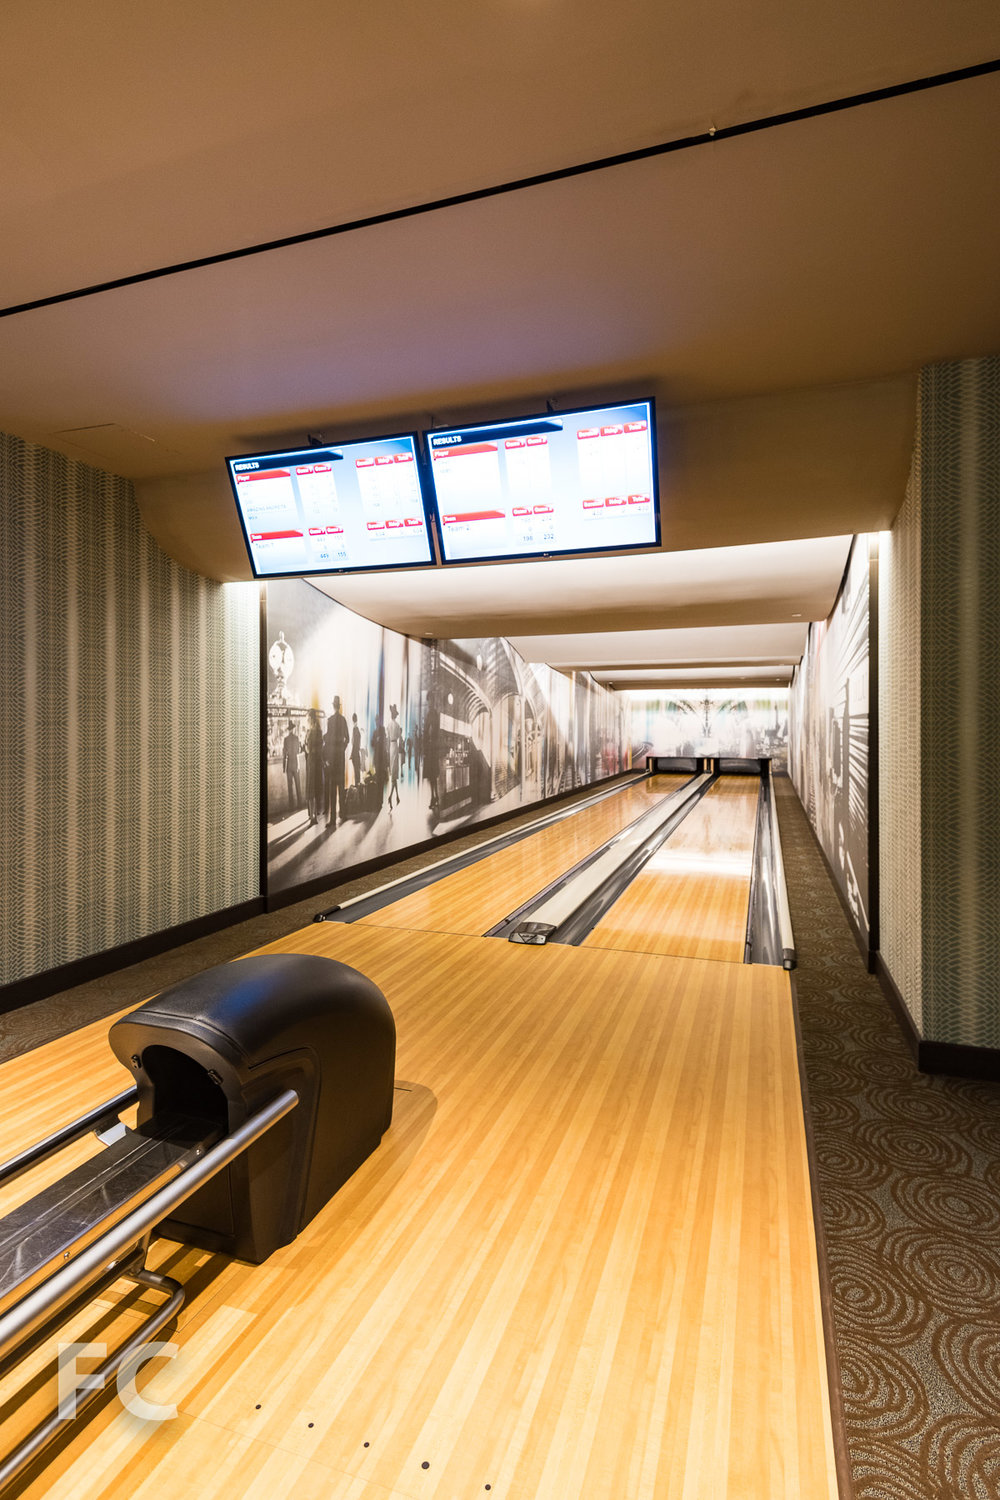 Bowling alley in the play area.